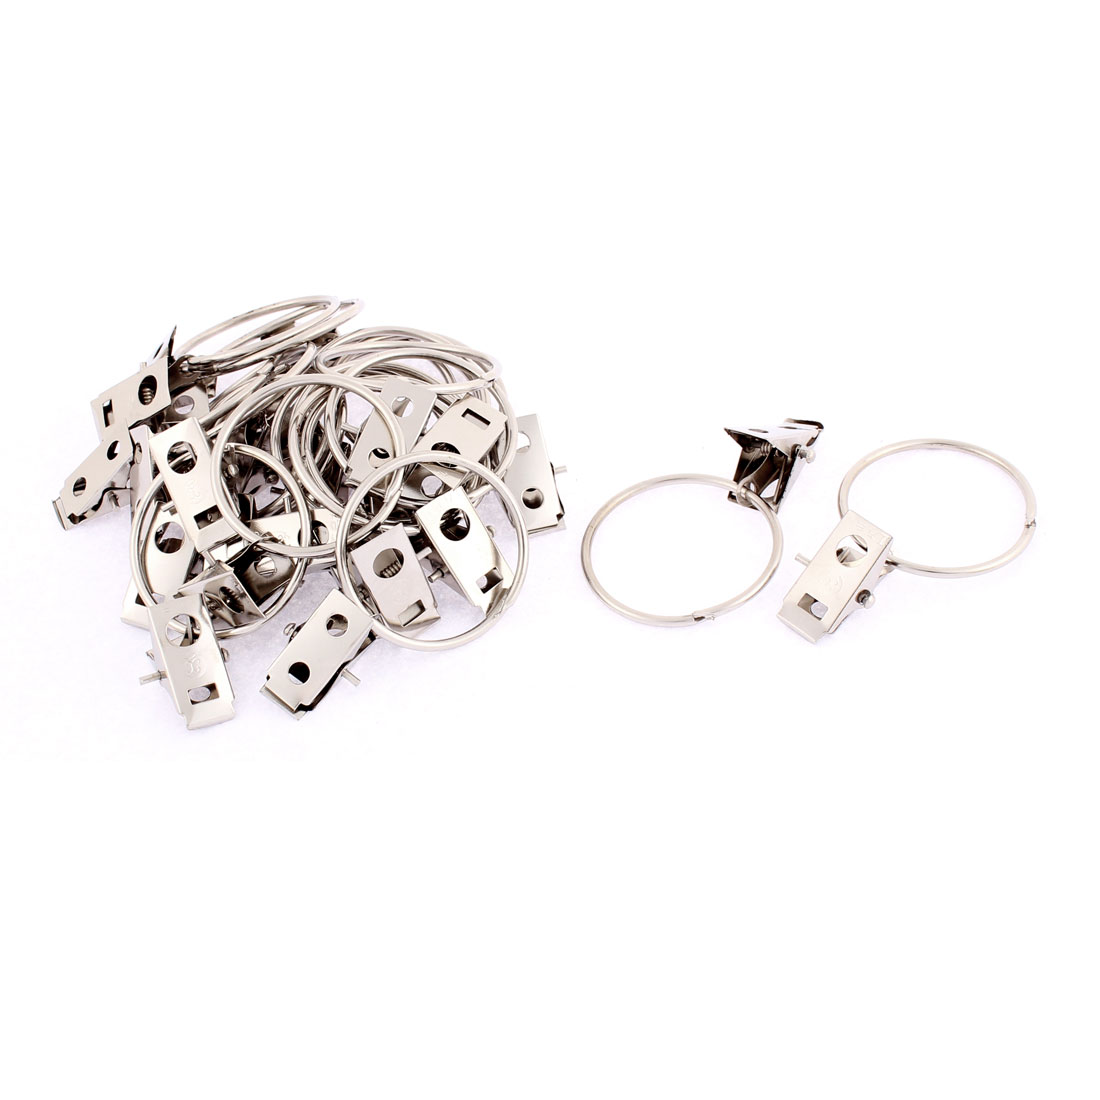 Home Stainless Steel Split Clip Ring Sprung Curtain Clips 24Pcs